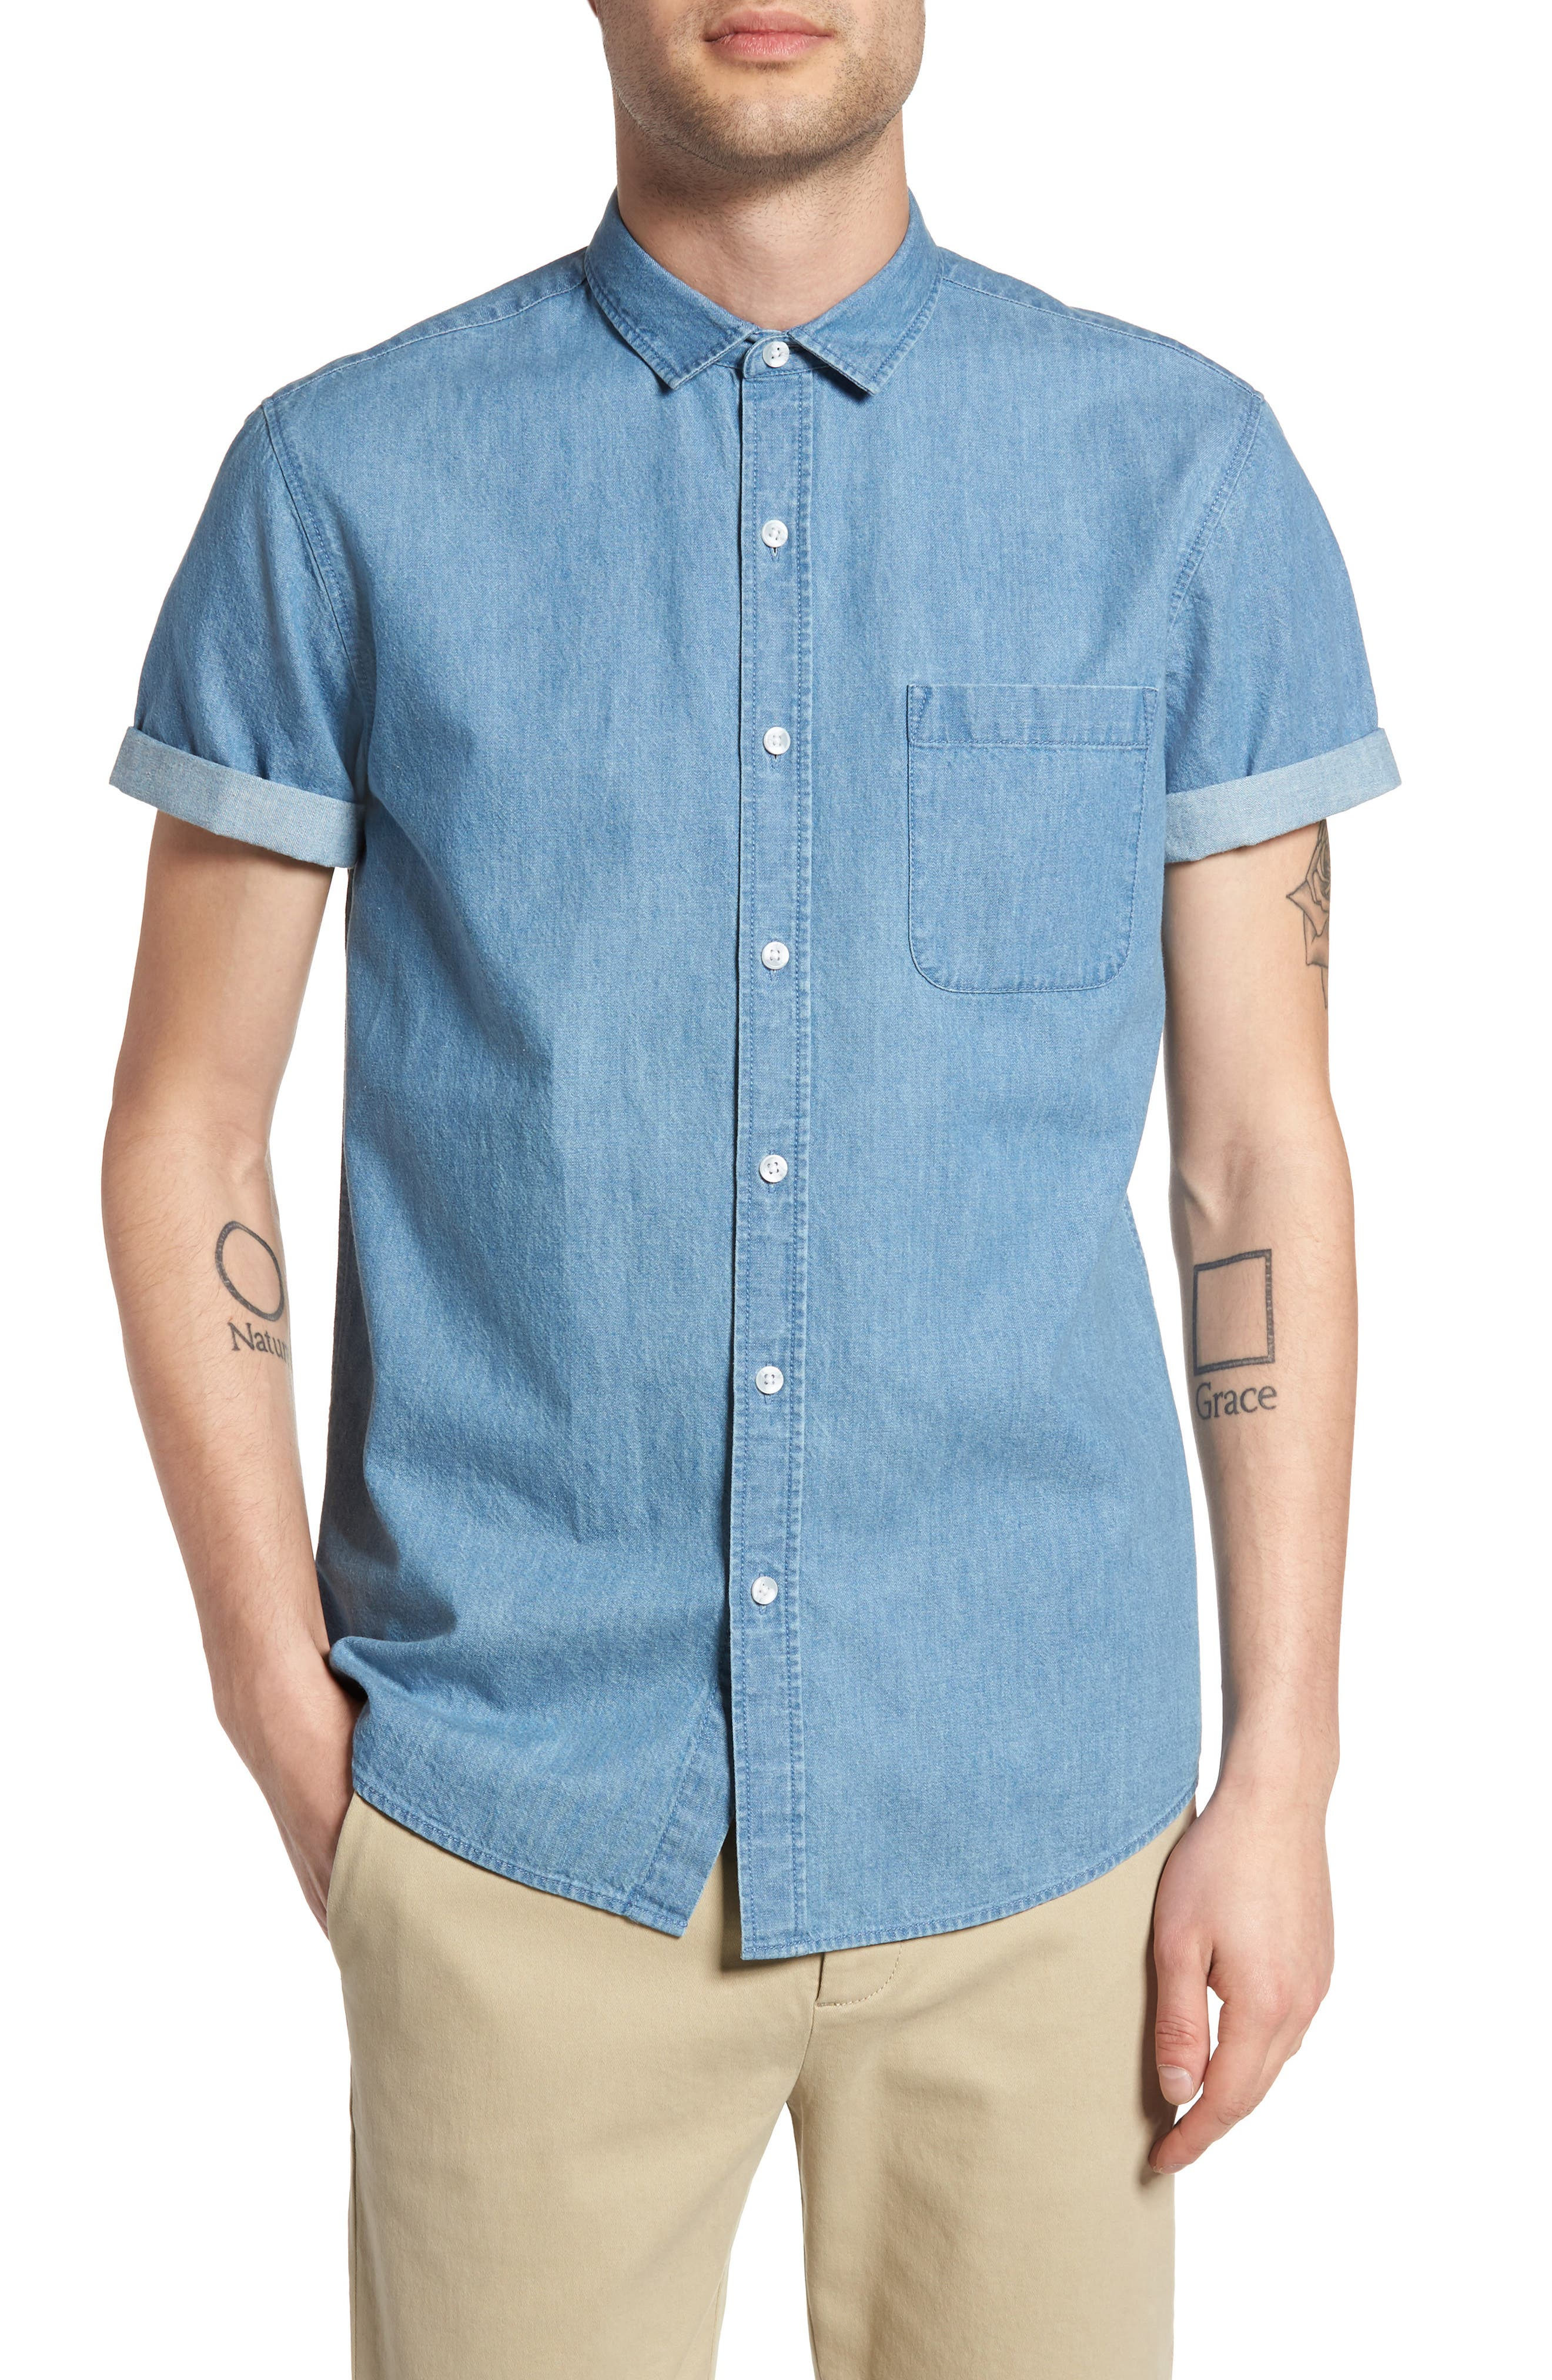 Topman Washed Denim Shirt